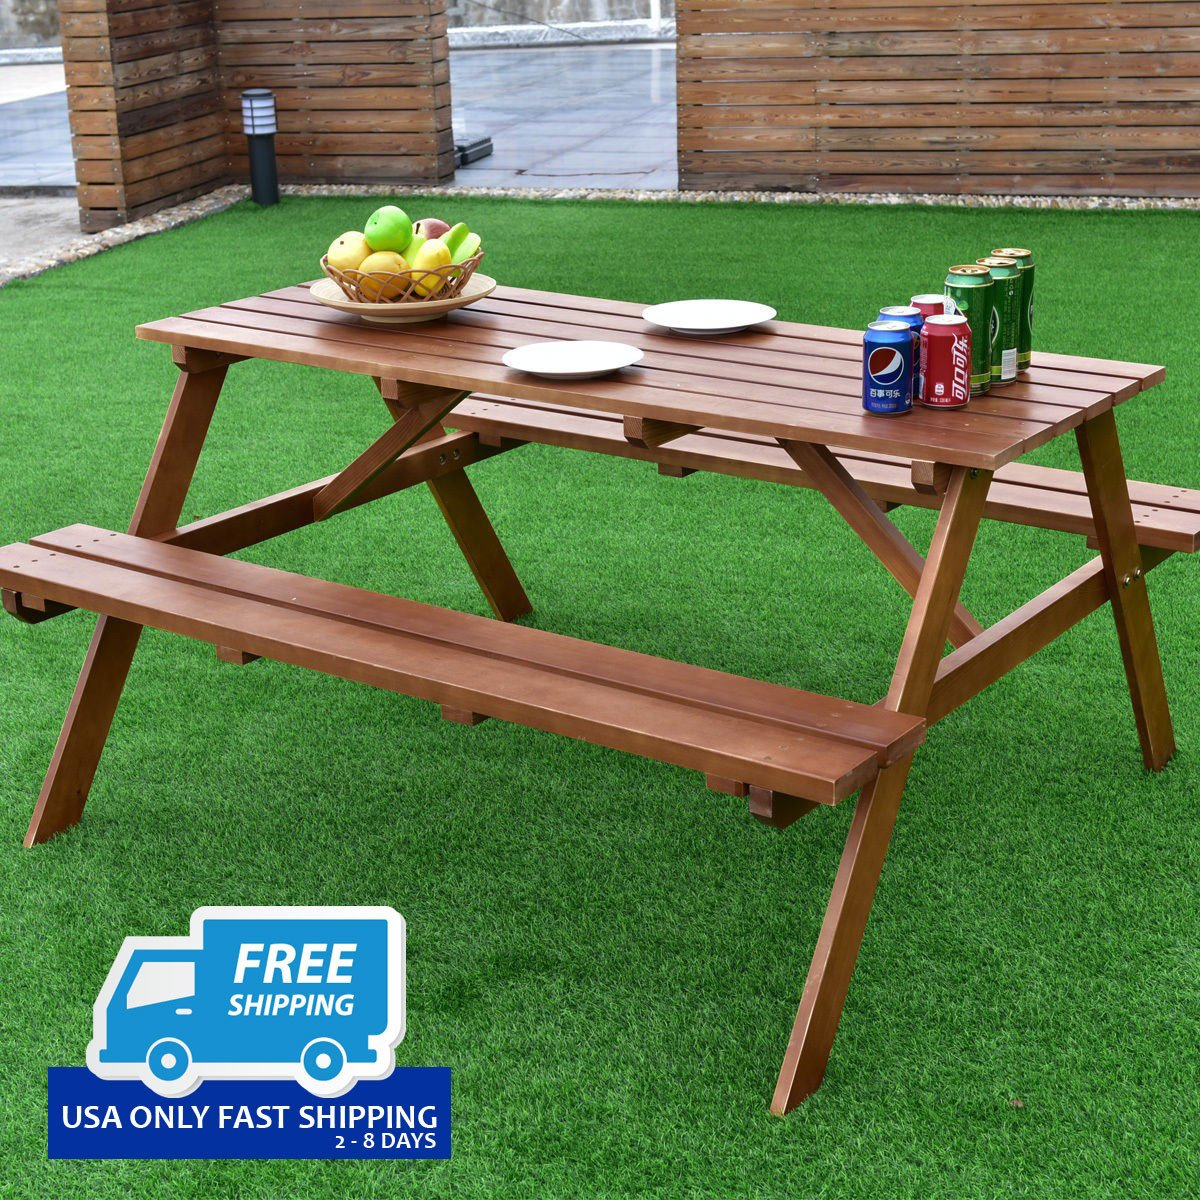 Outdoor solid pine wood picnic table w attached bench by choice outdoor solid pine wood picnic table w attached bench watchthetrailerfo